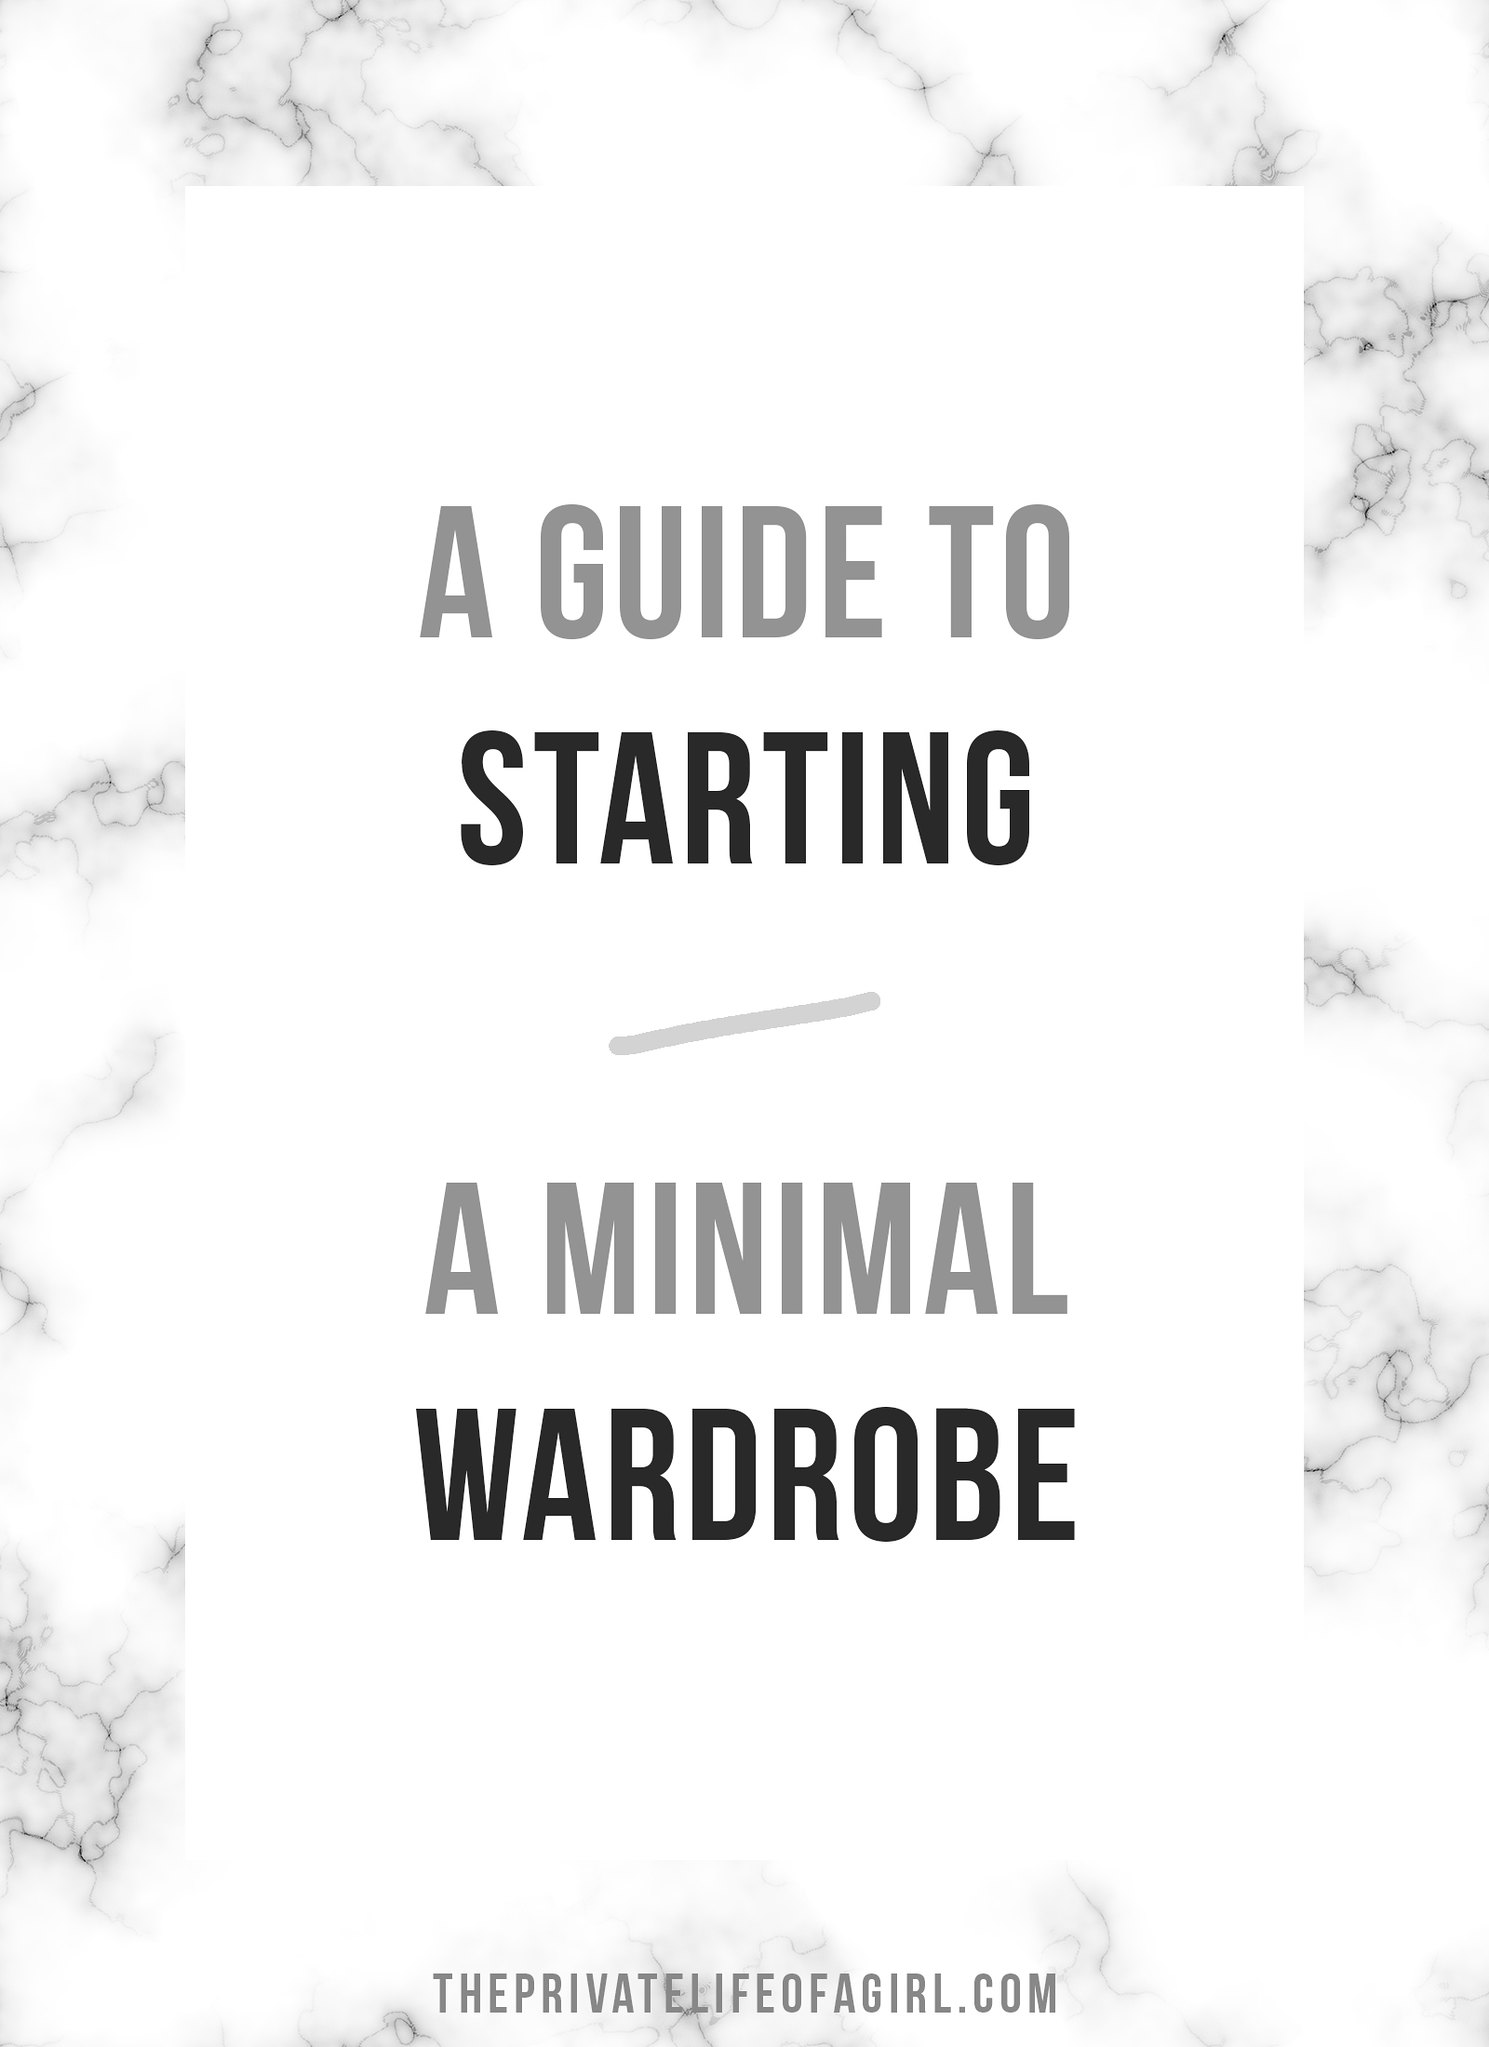 A Guide To Starting A Minimal Wardrobe